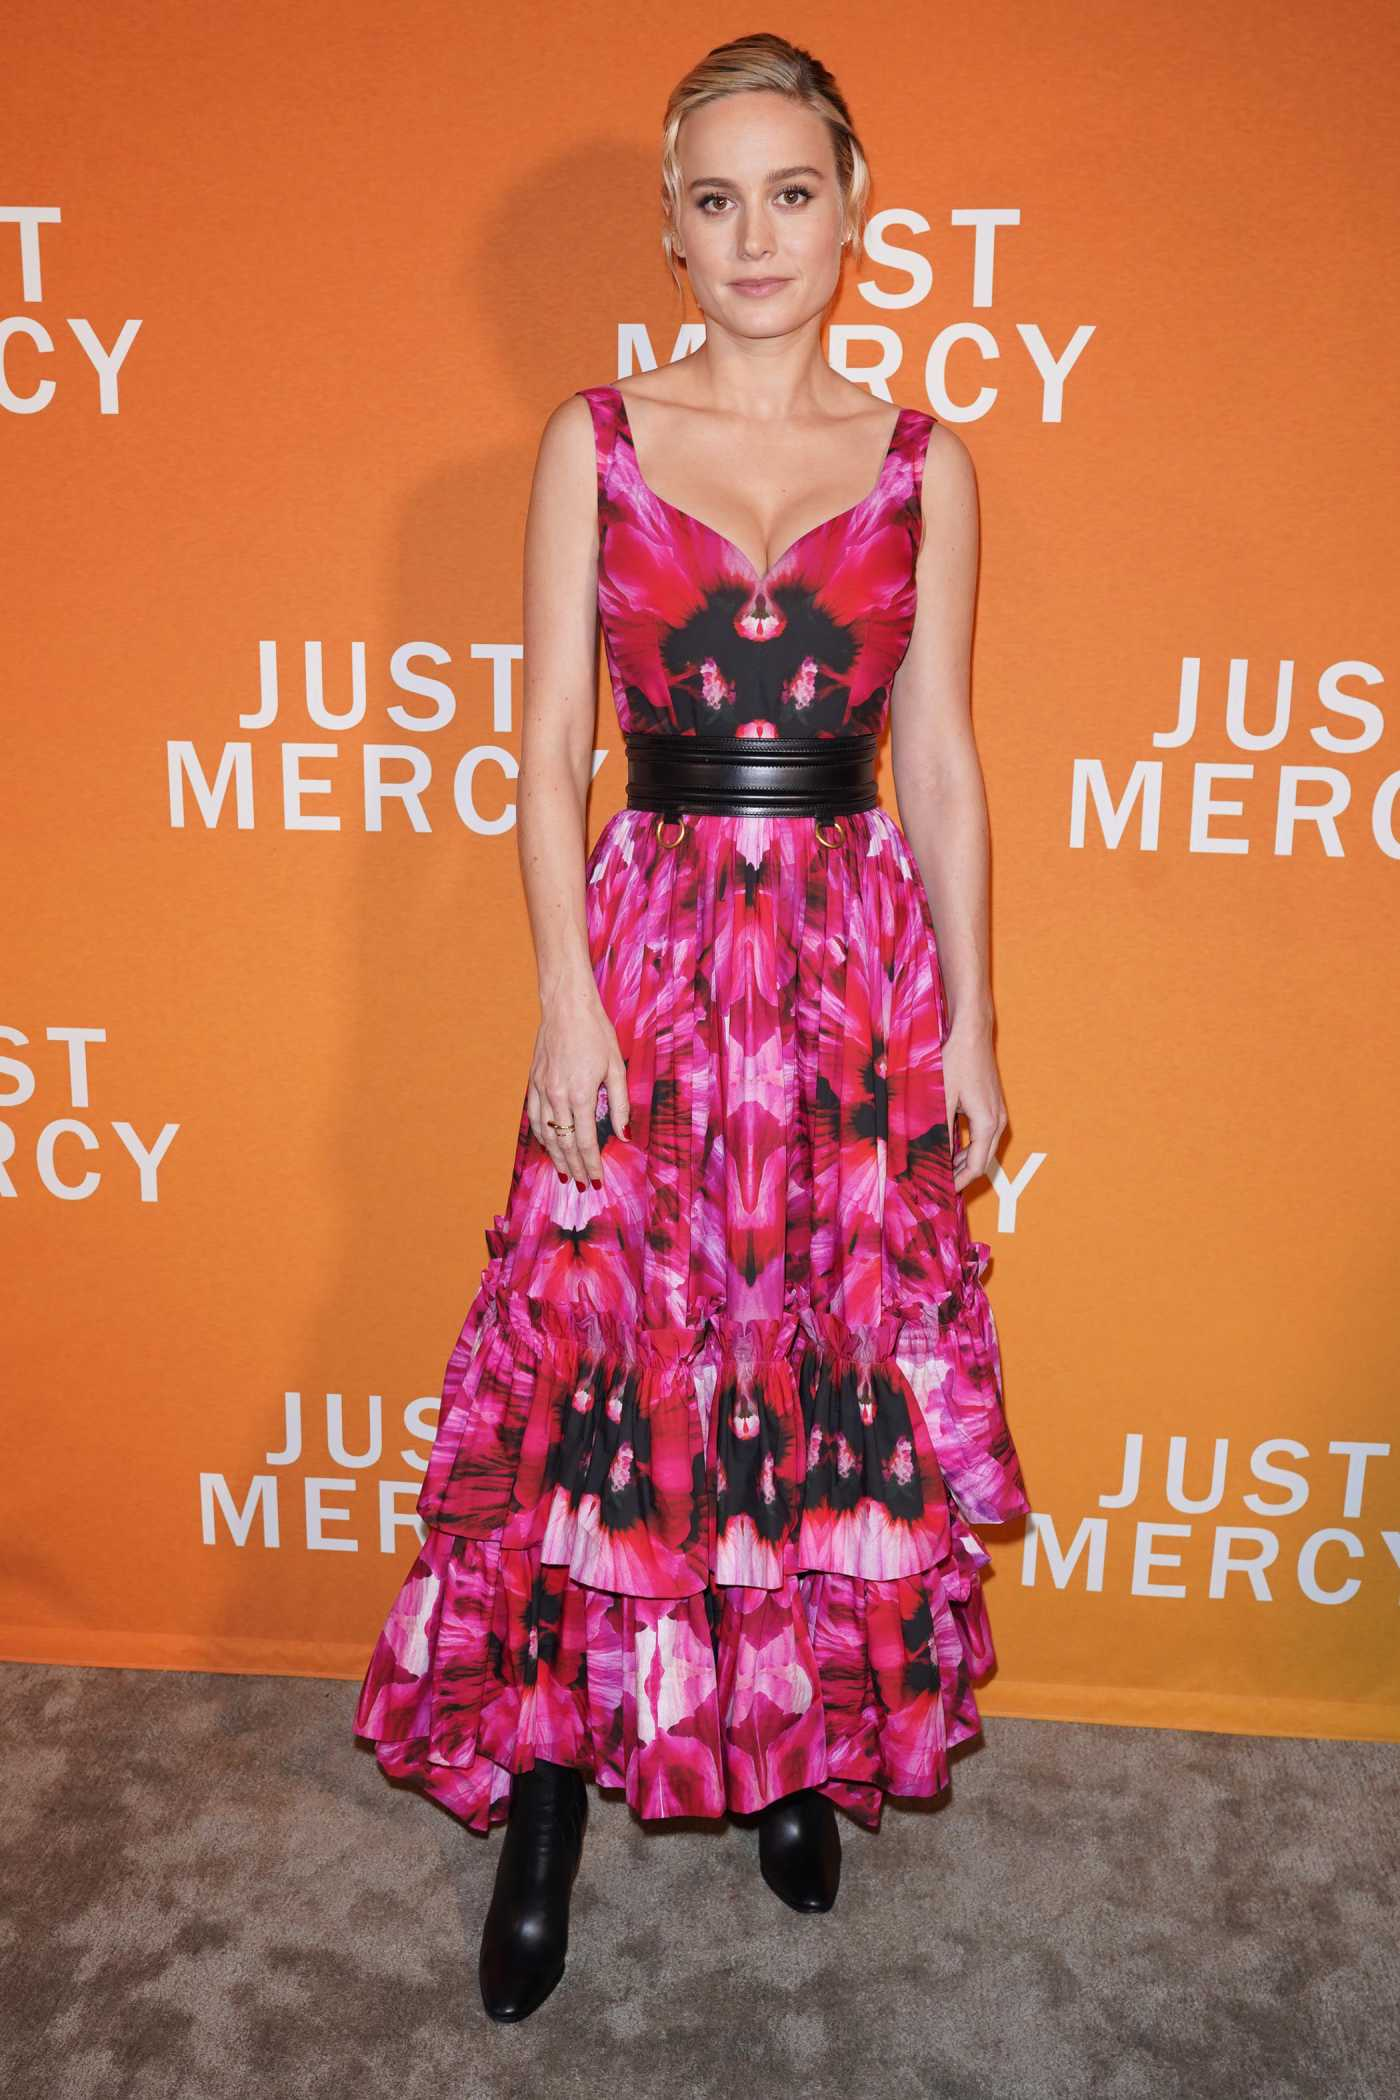 Brie Larson in a Red Floral Dress Attends Special NY Reception to Celebrate Just Mercy in New York 12/15/2019